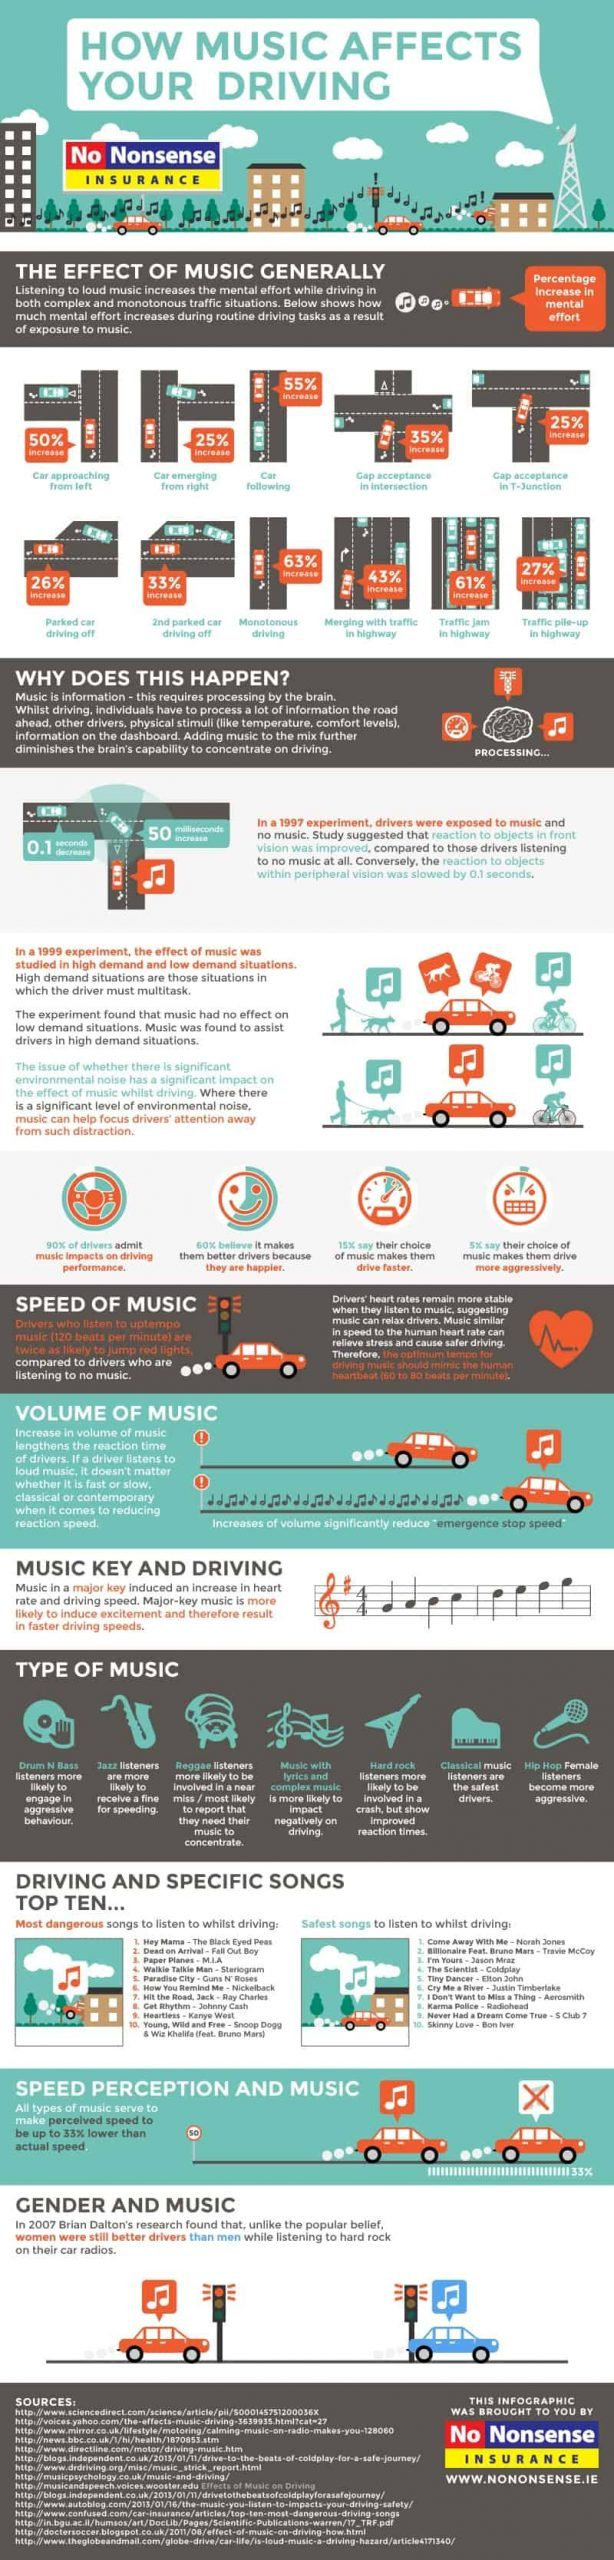 music-affects-driving-infographic-6383445